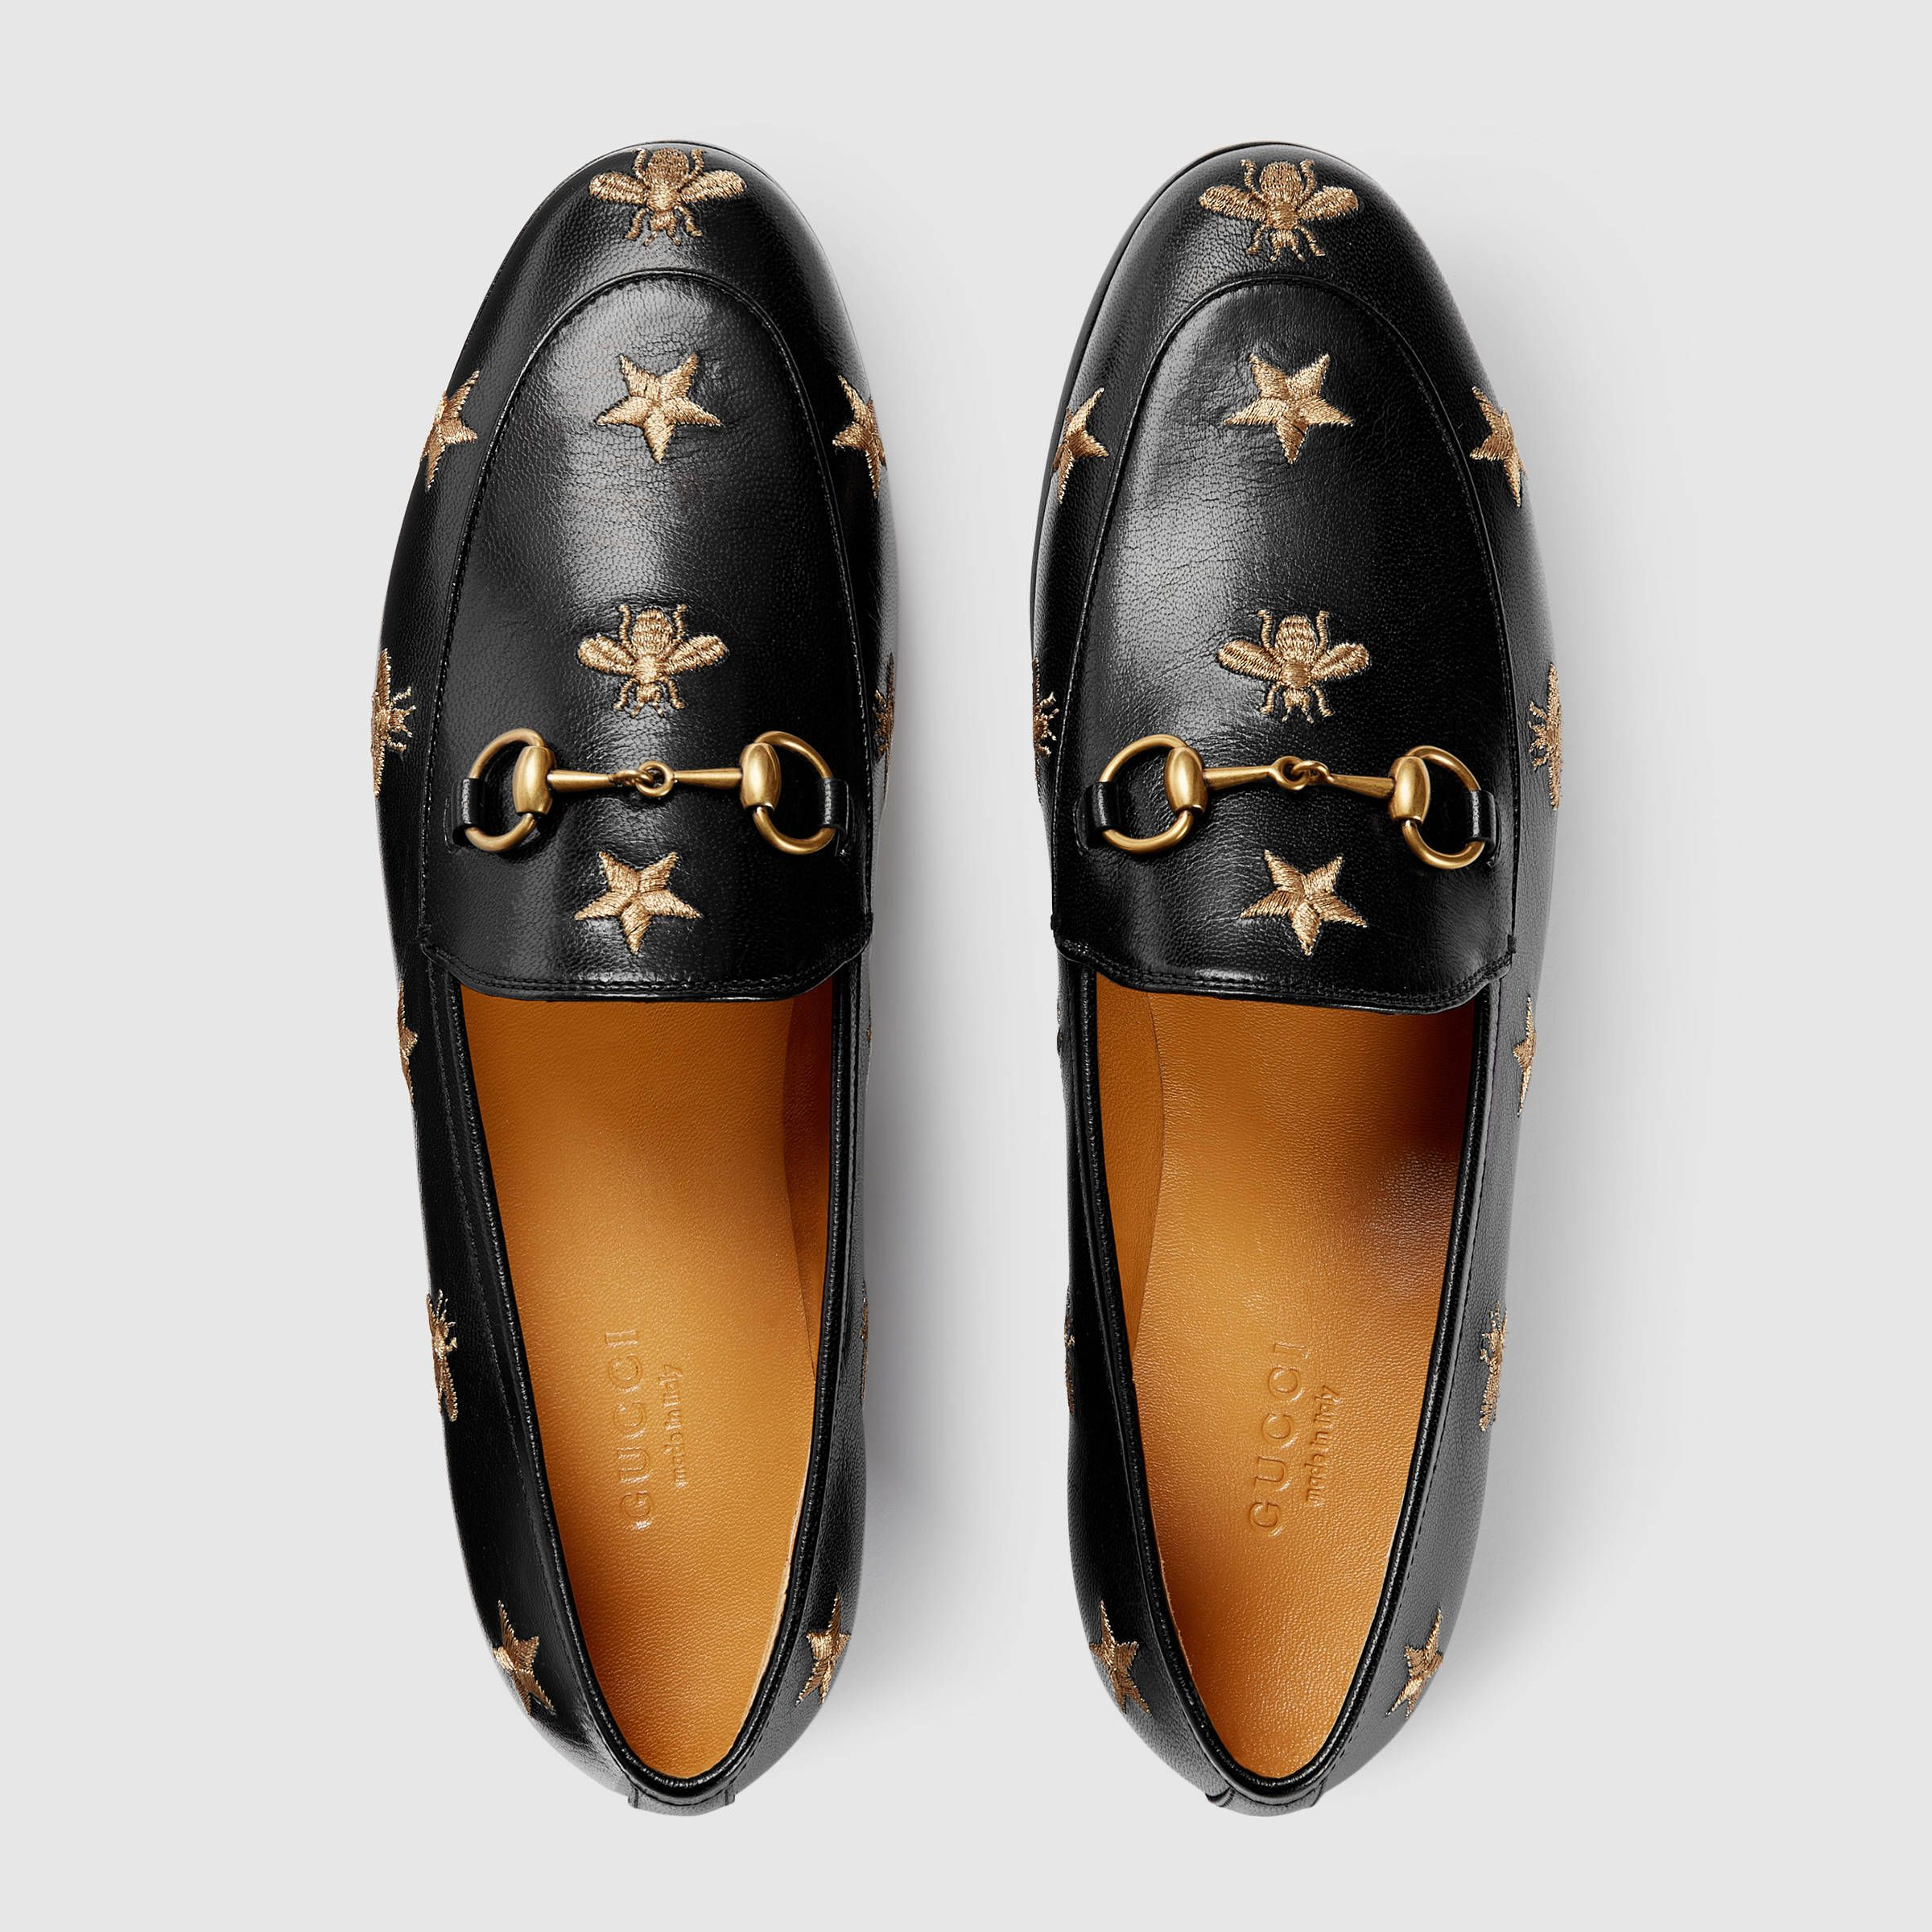 7c0945c26 Gucci Jordaan embroidered leather loafer in 2019 | My loves ...